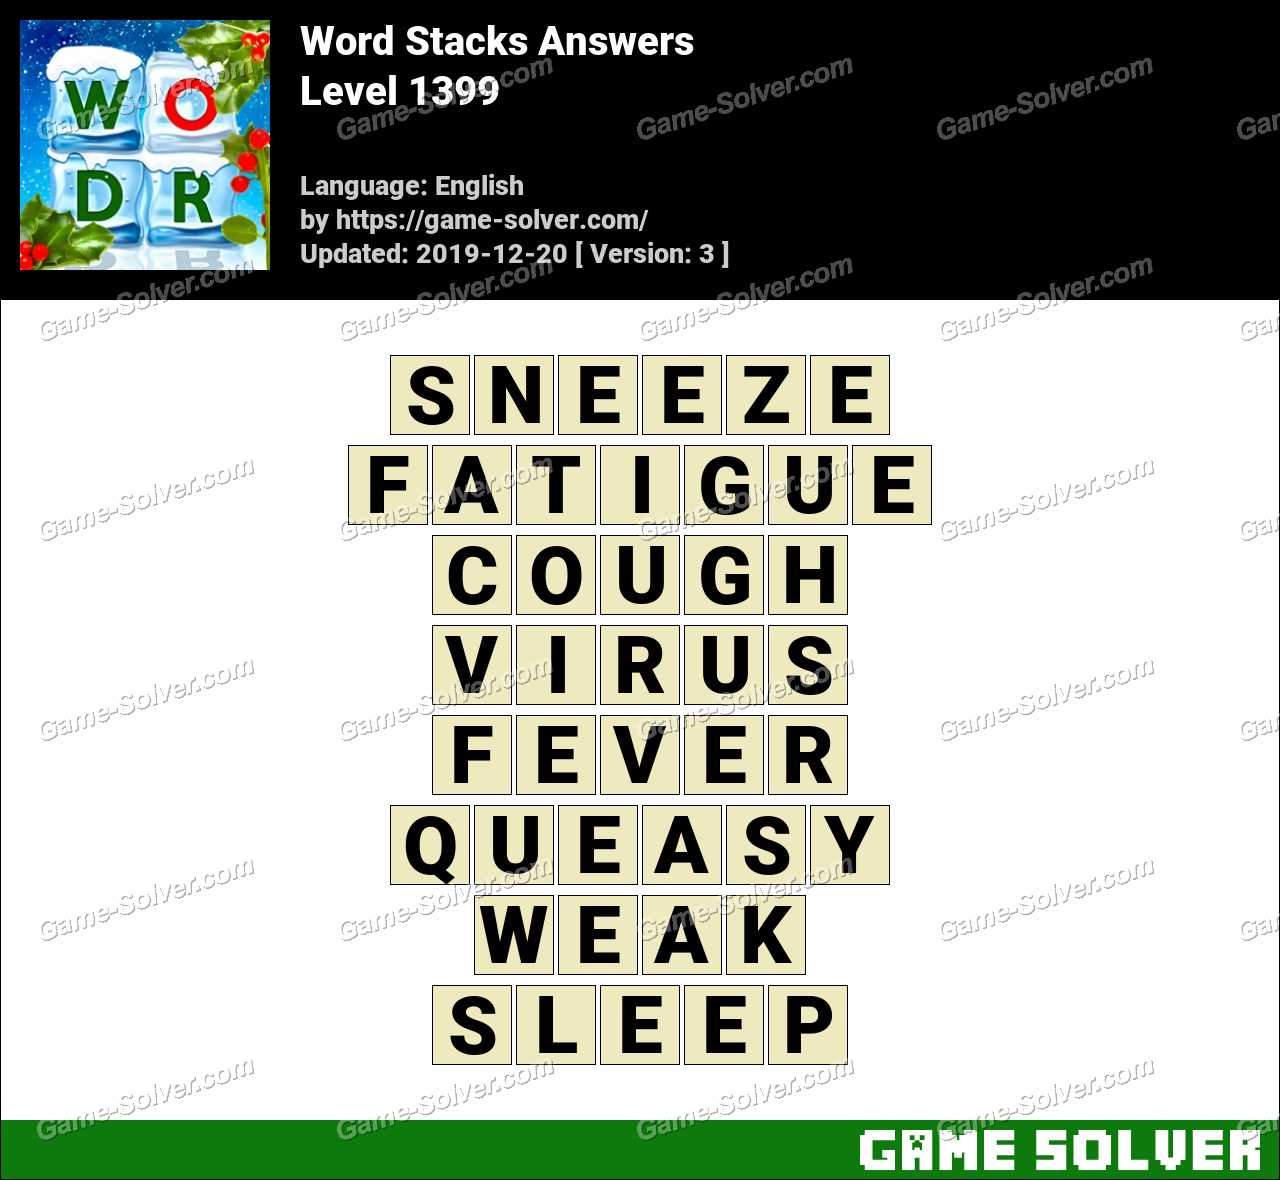 Word Stacks Level 1399 Answers